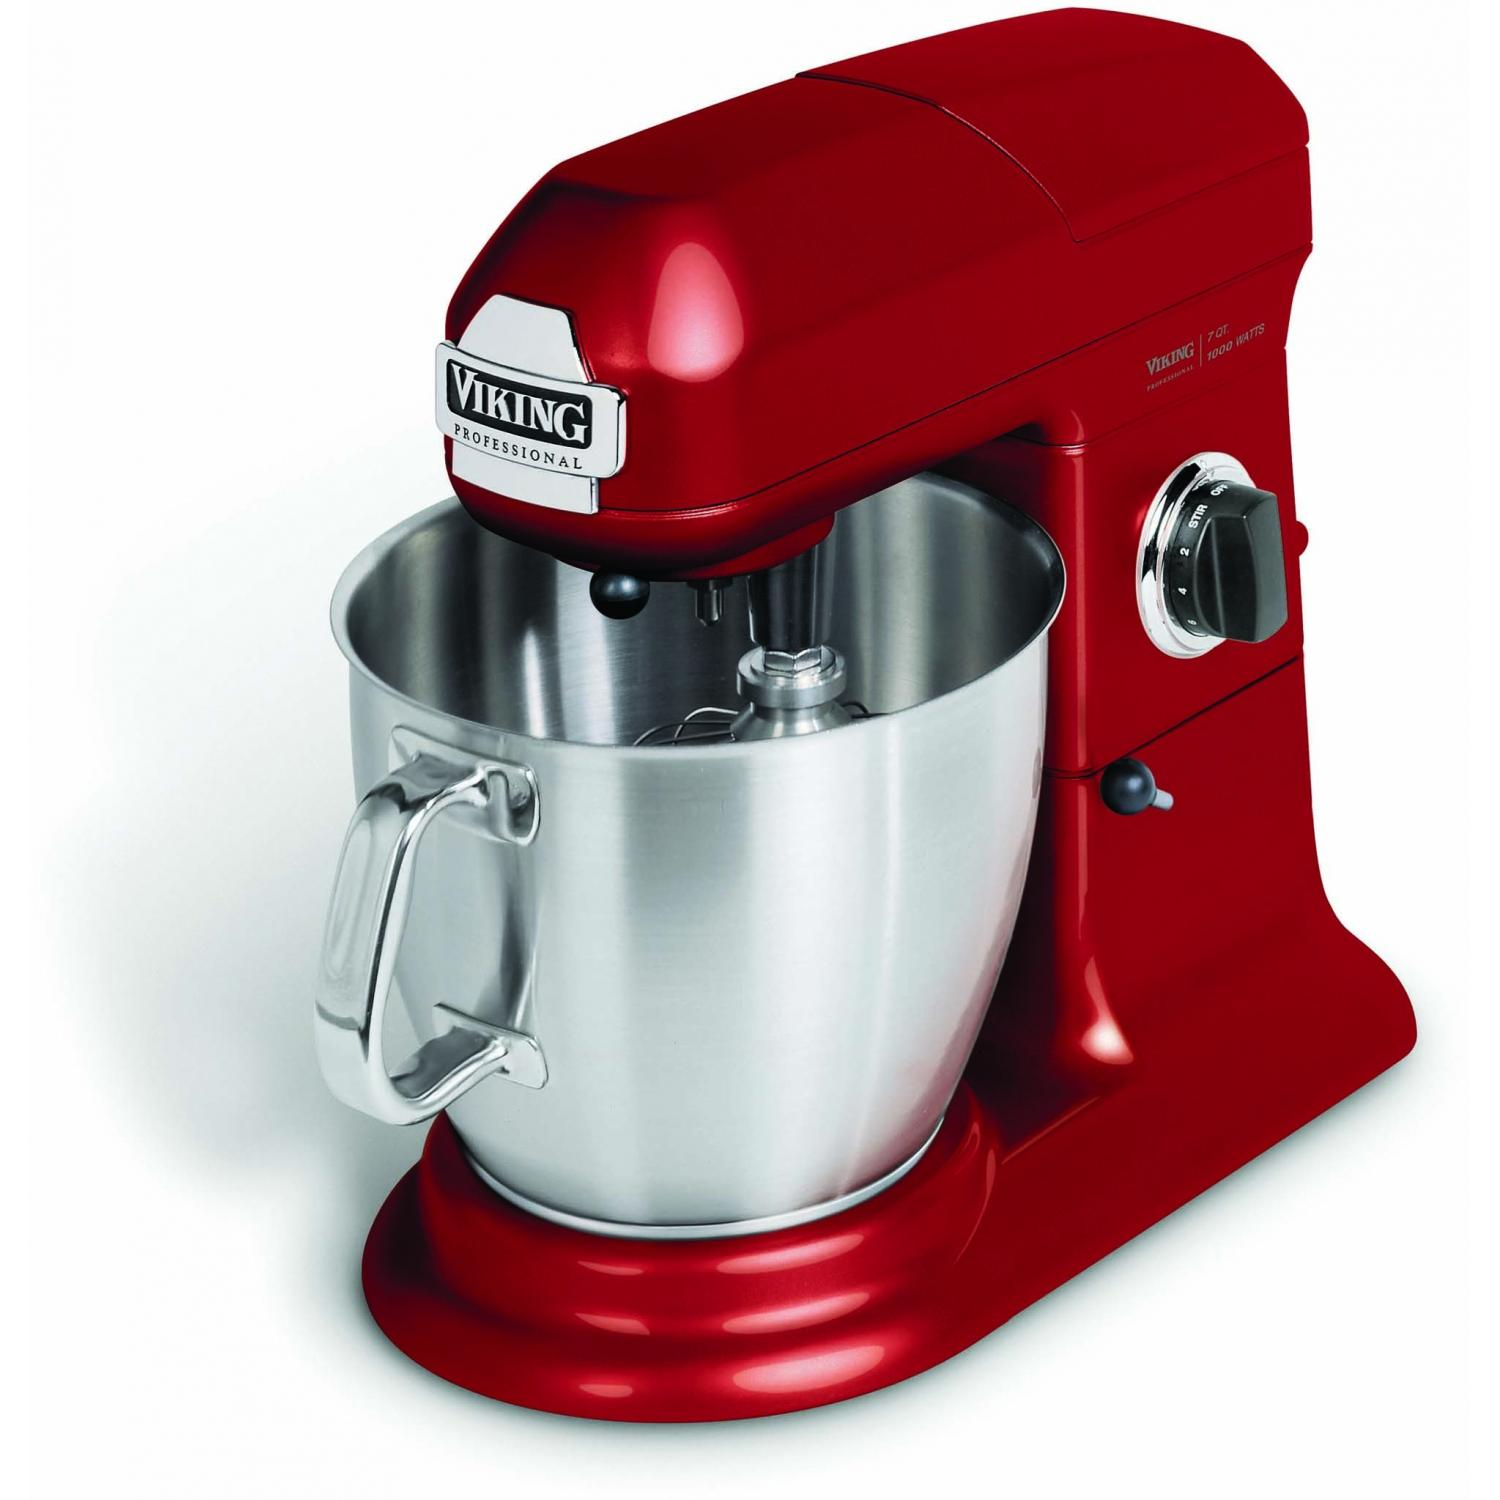 Viking VSM700BR Professional 7-Quart Stand Mixer - Bright Red